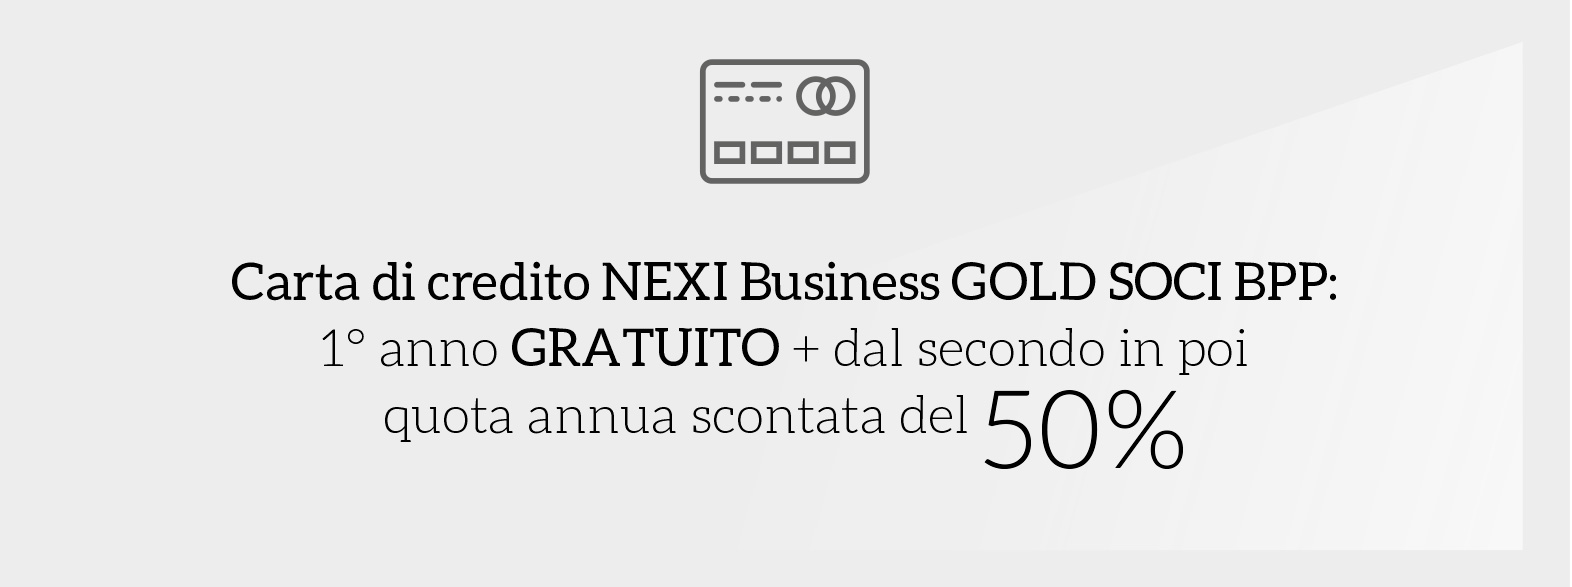 Carta di credito nexi business gold soci bpp